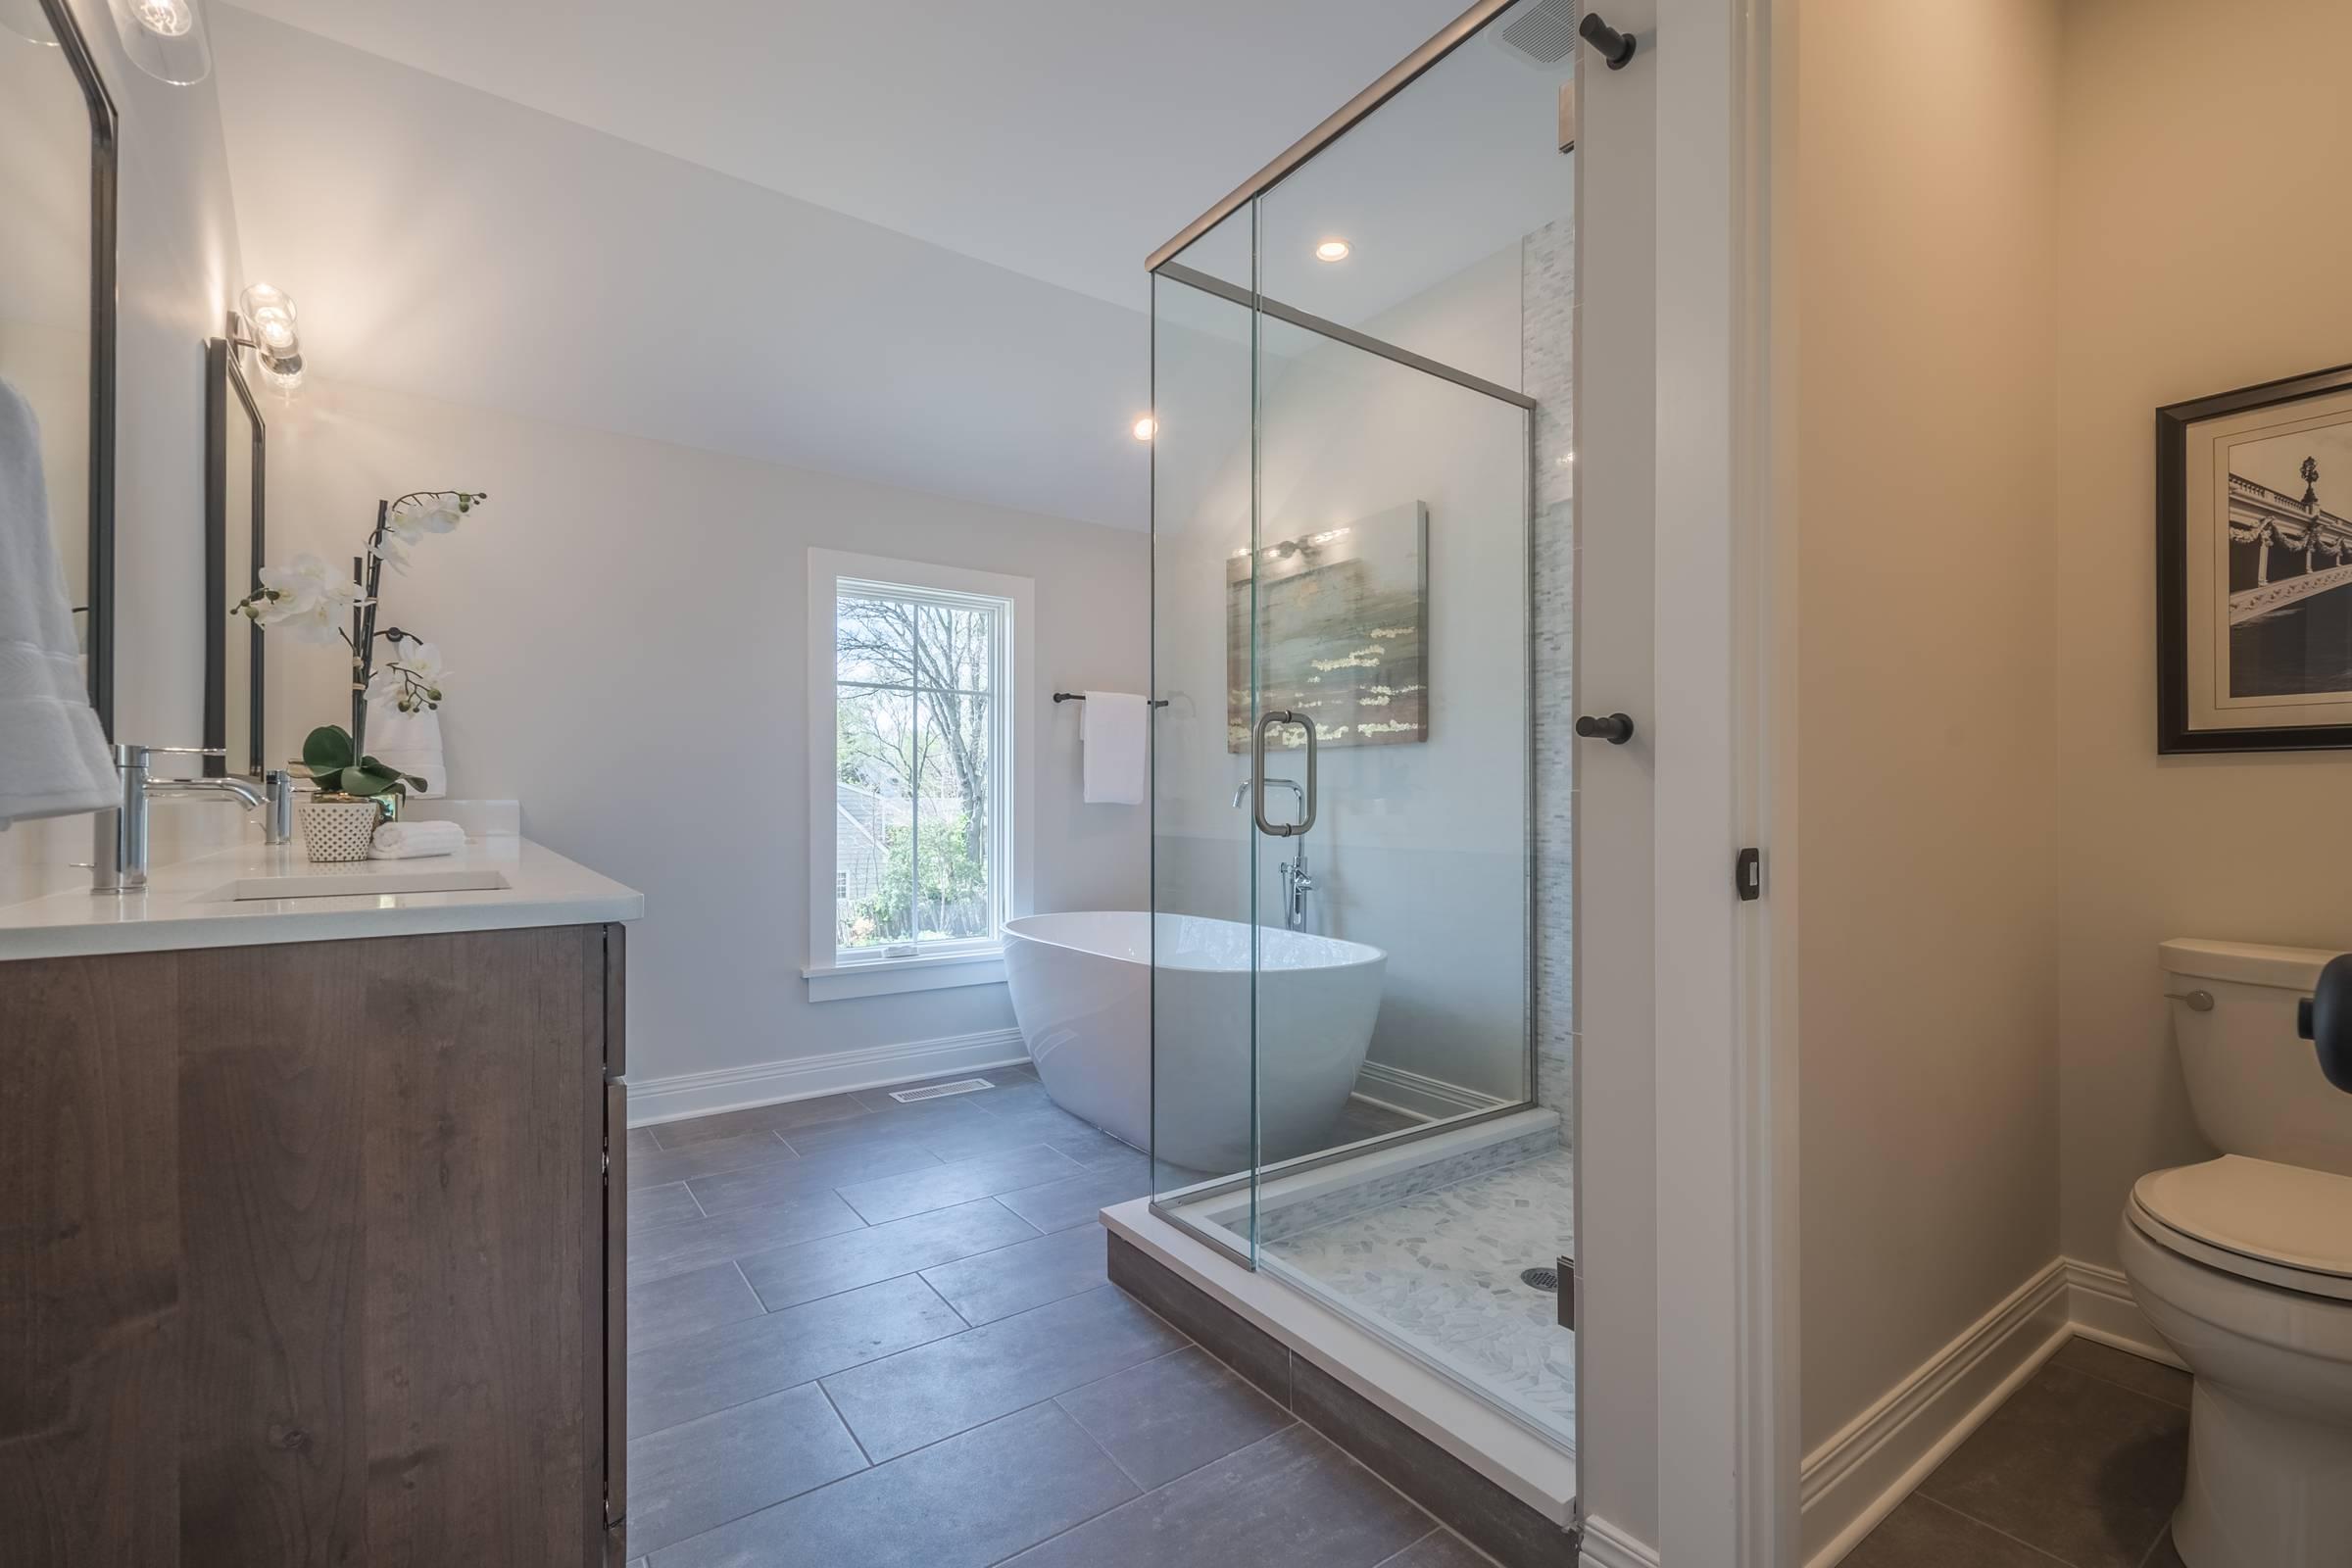 Shower with glass shower doors in front of ceramic tub